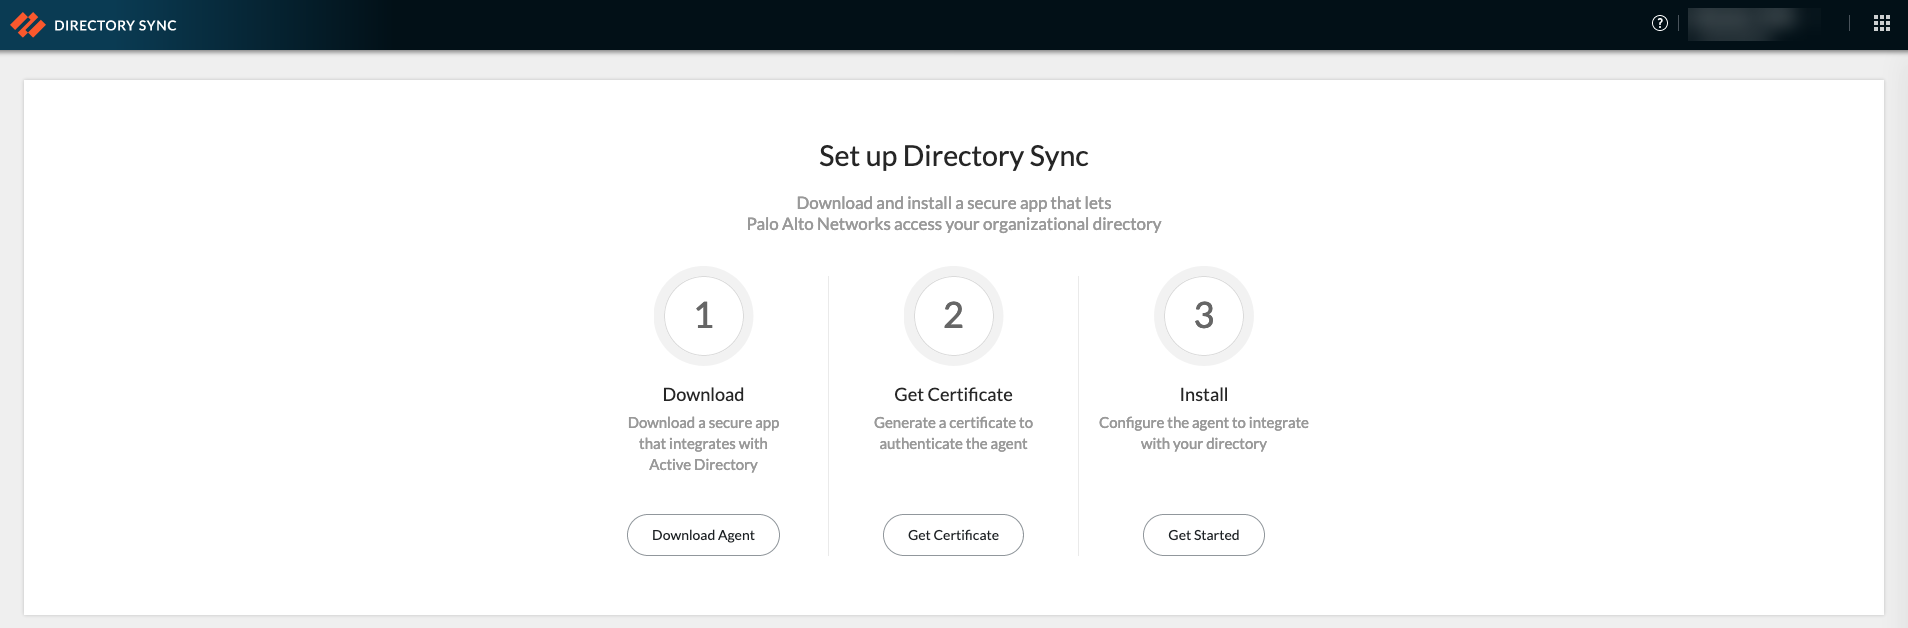 dir-sync-create-directory-sync-instance.png